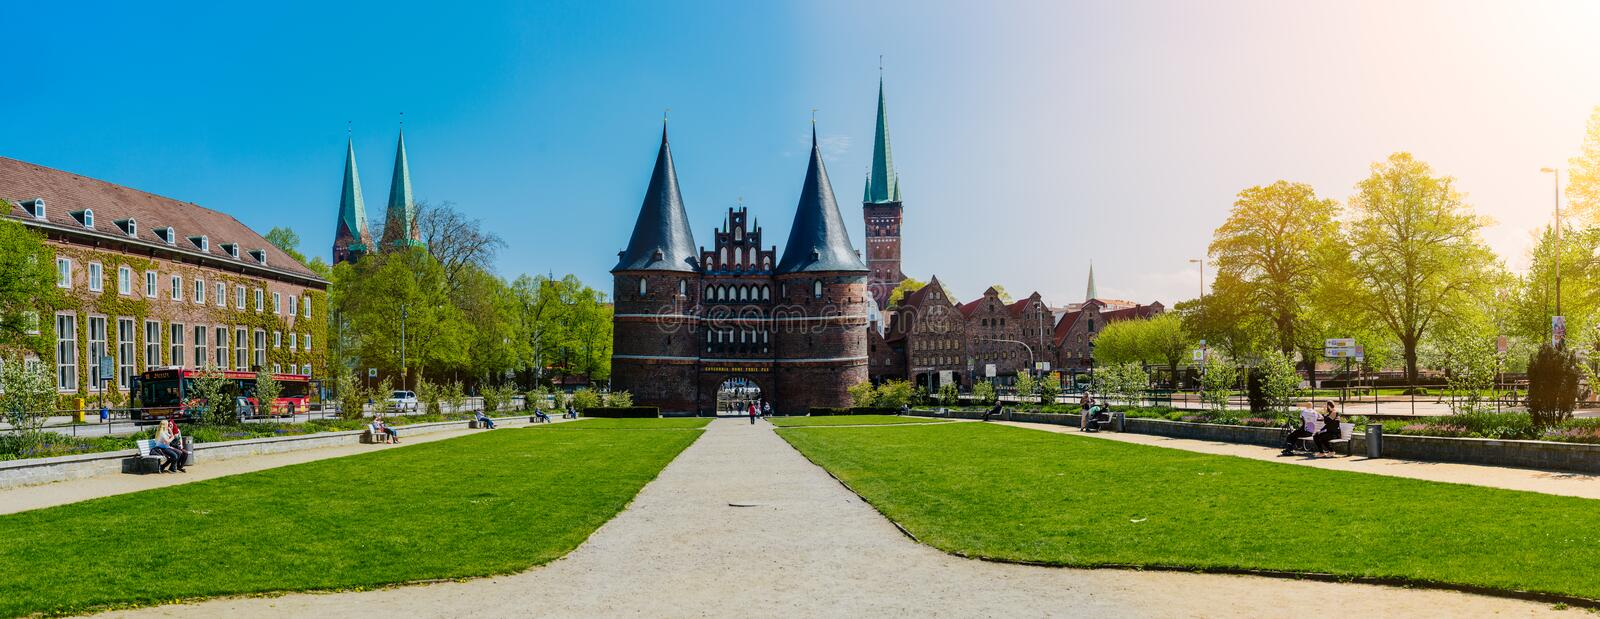 LUEBECK, DEUTSCHLAND - 29. April 2018: Das Holsten-Tor in Luebeck stockfotografie